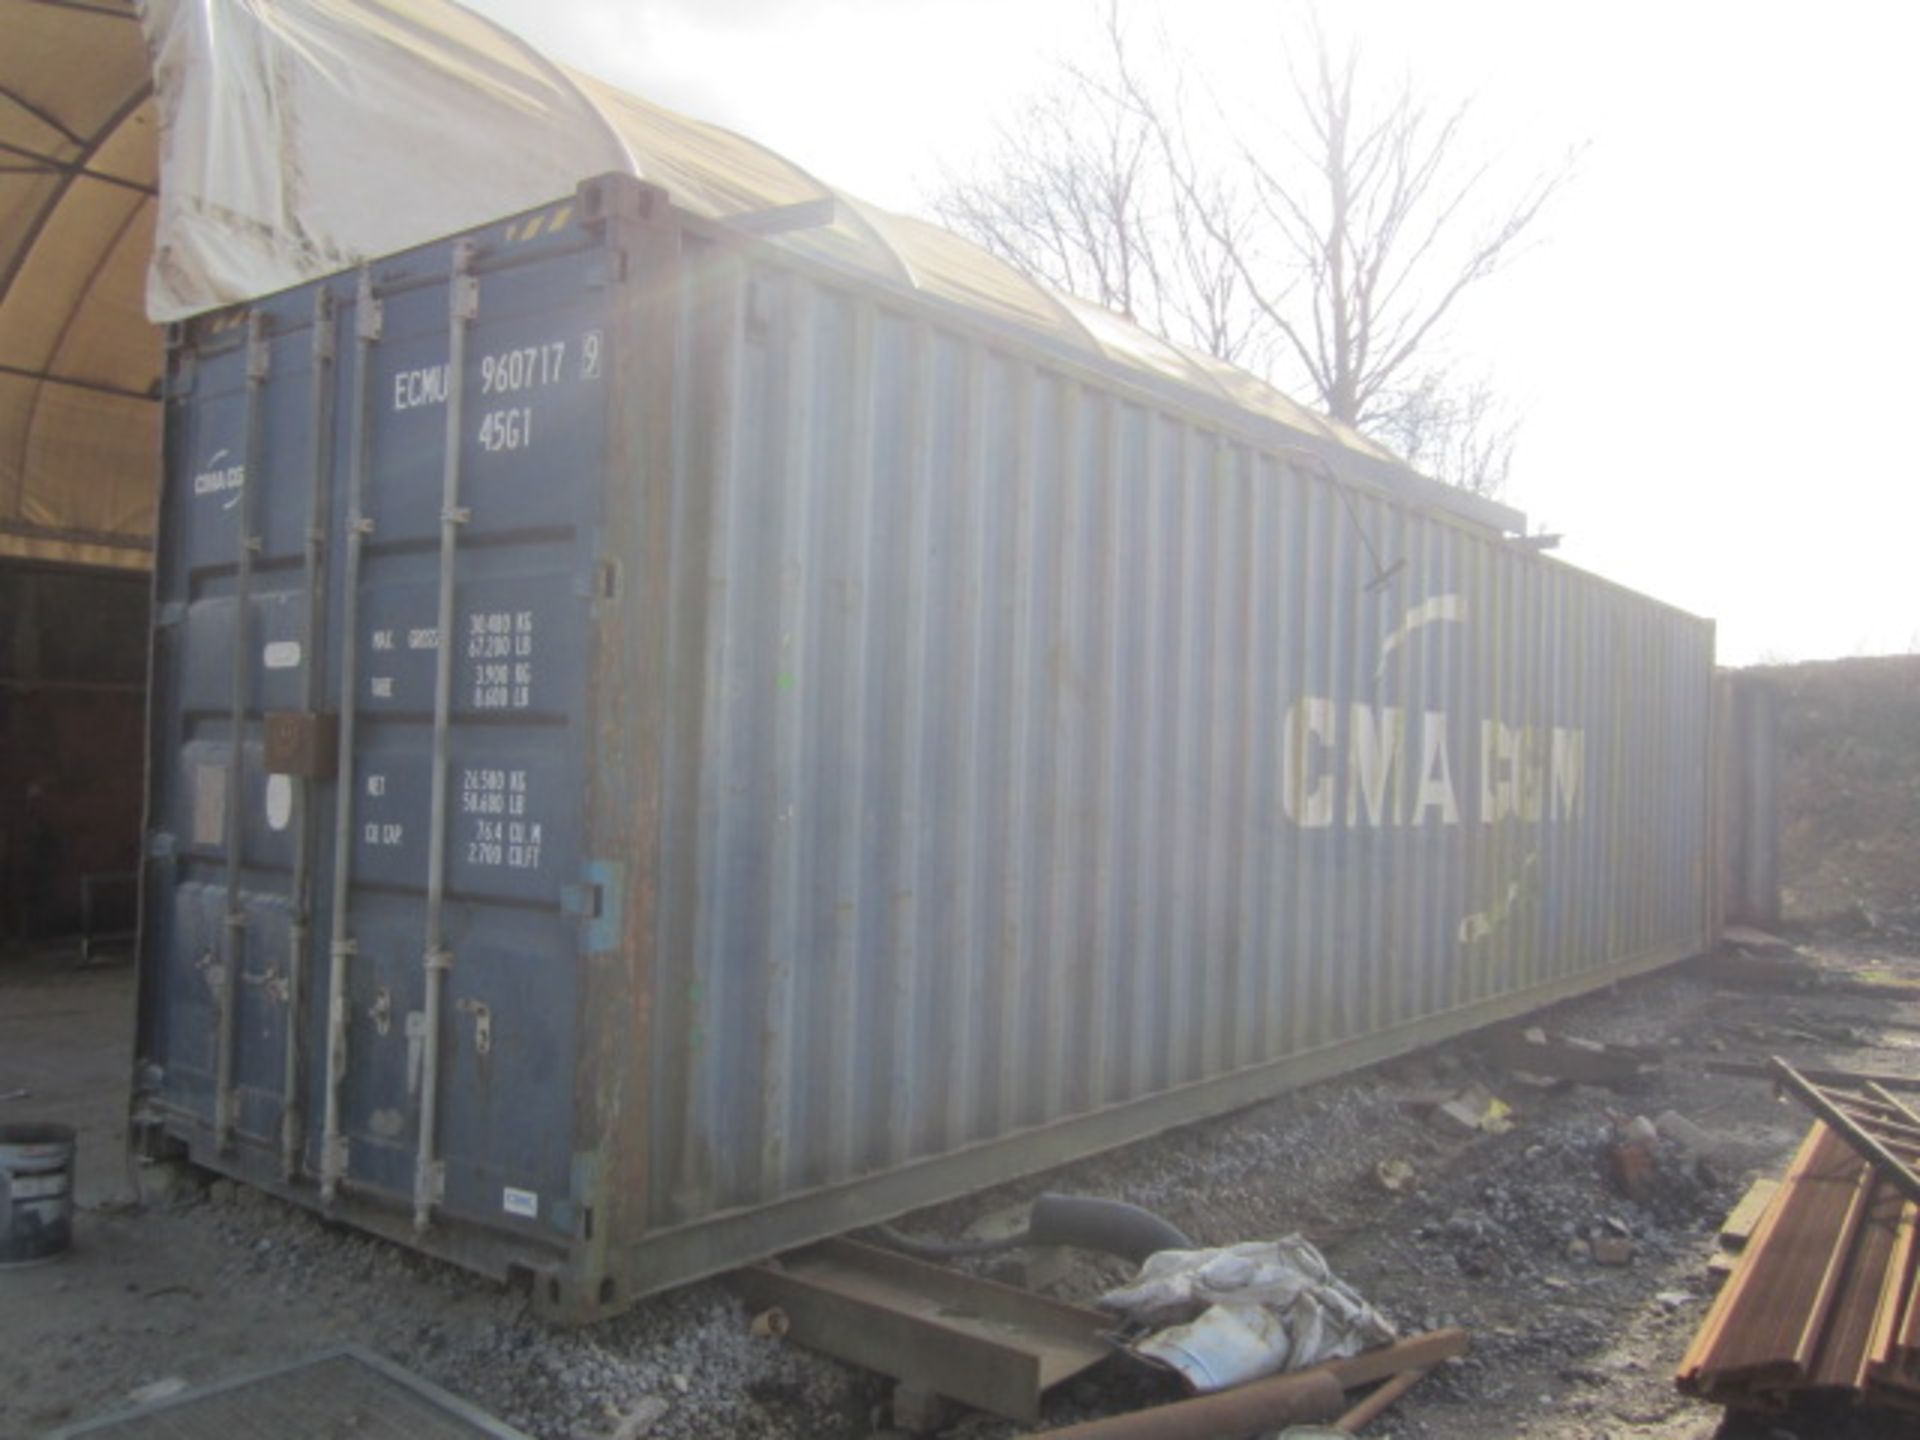 40ft export storage container, serial no. CIMC1532 2223 (2005) - Electrical disconnection required. - Image 2 of 4